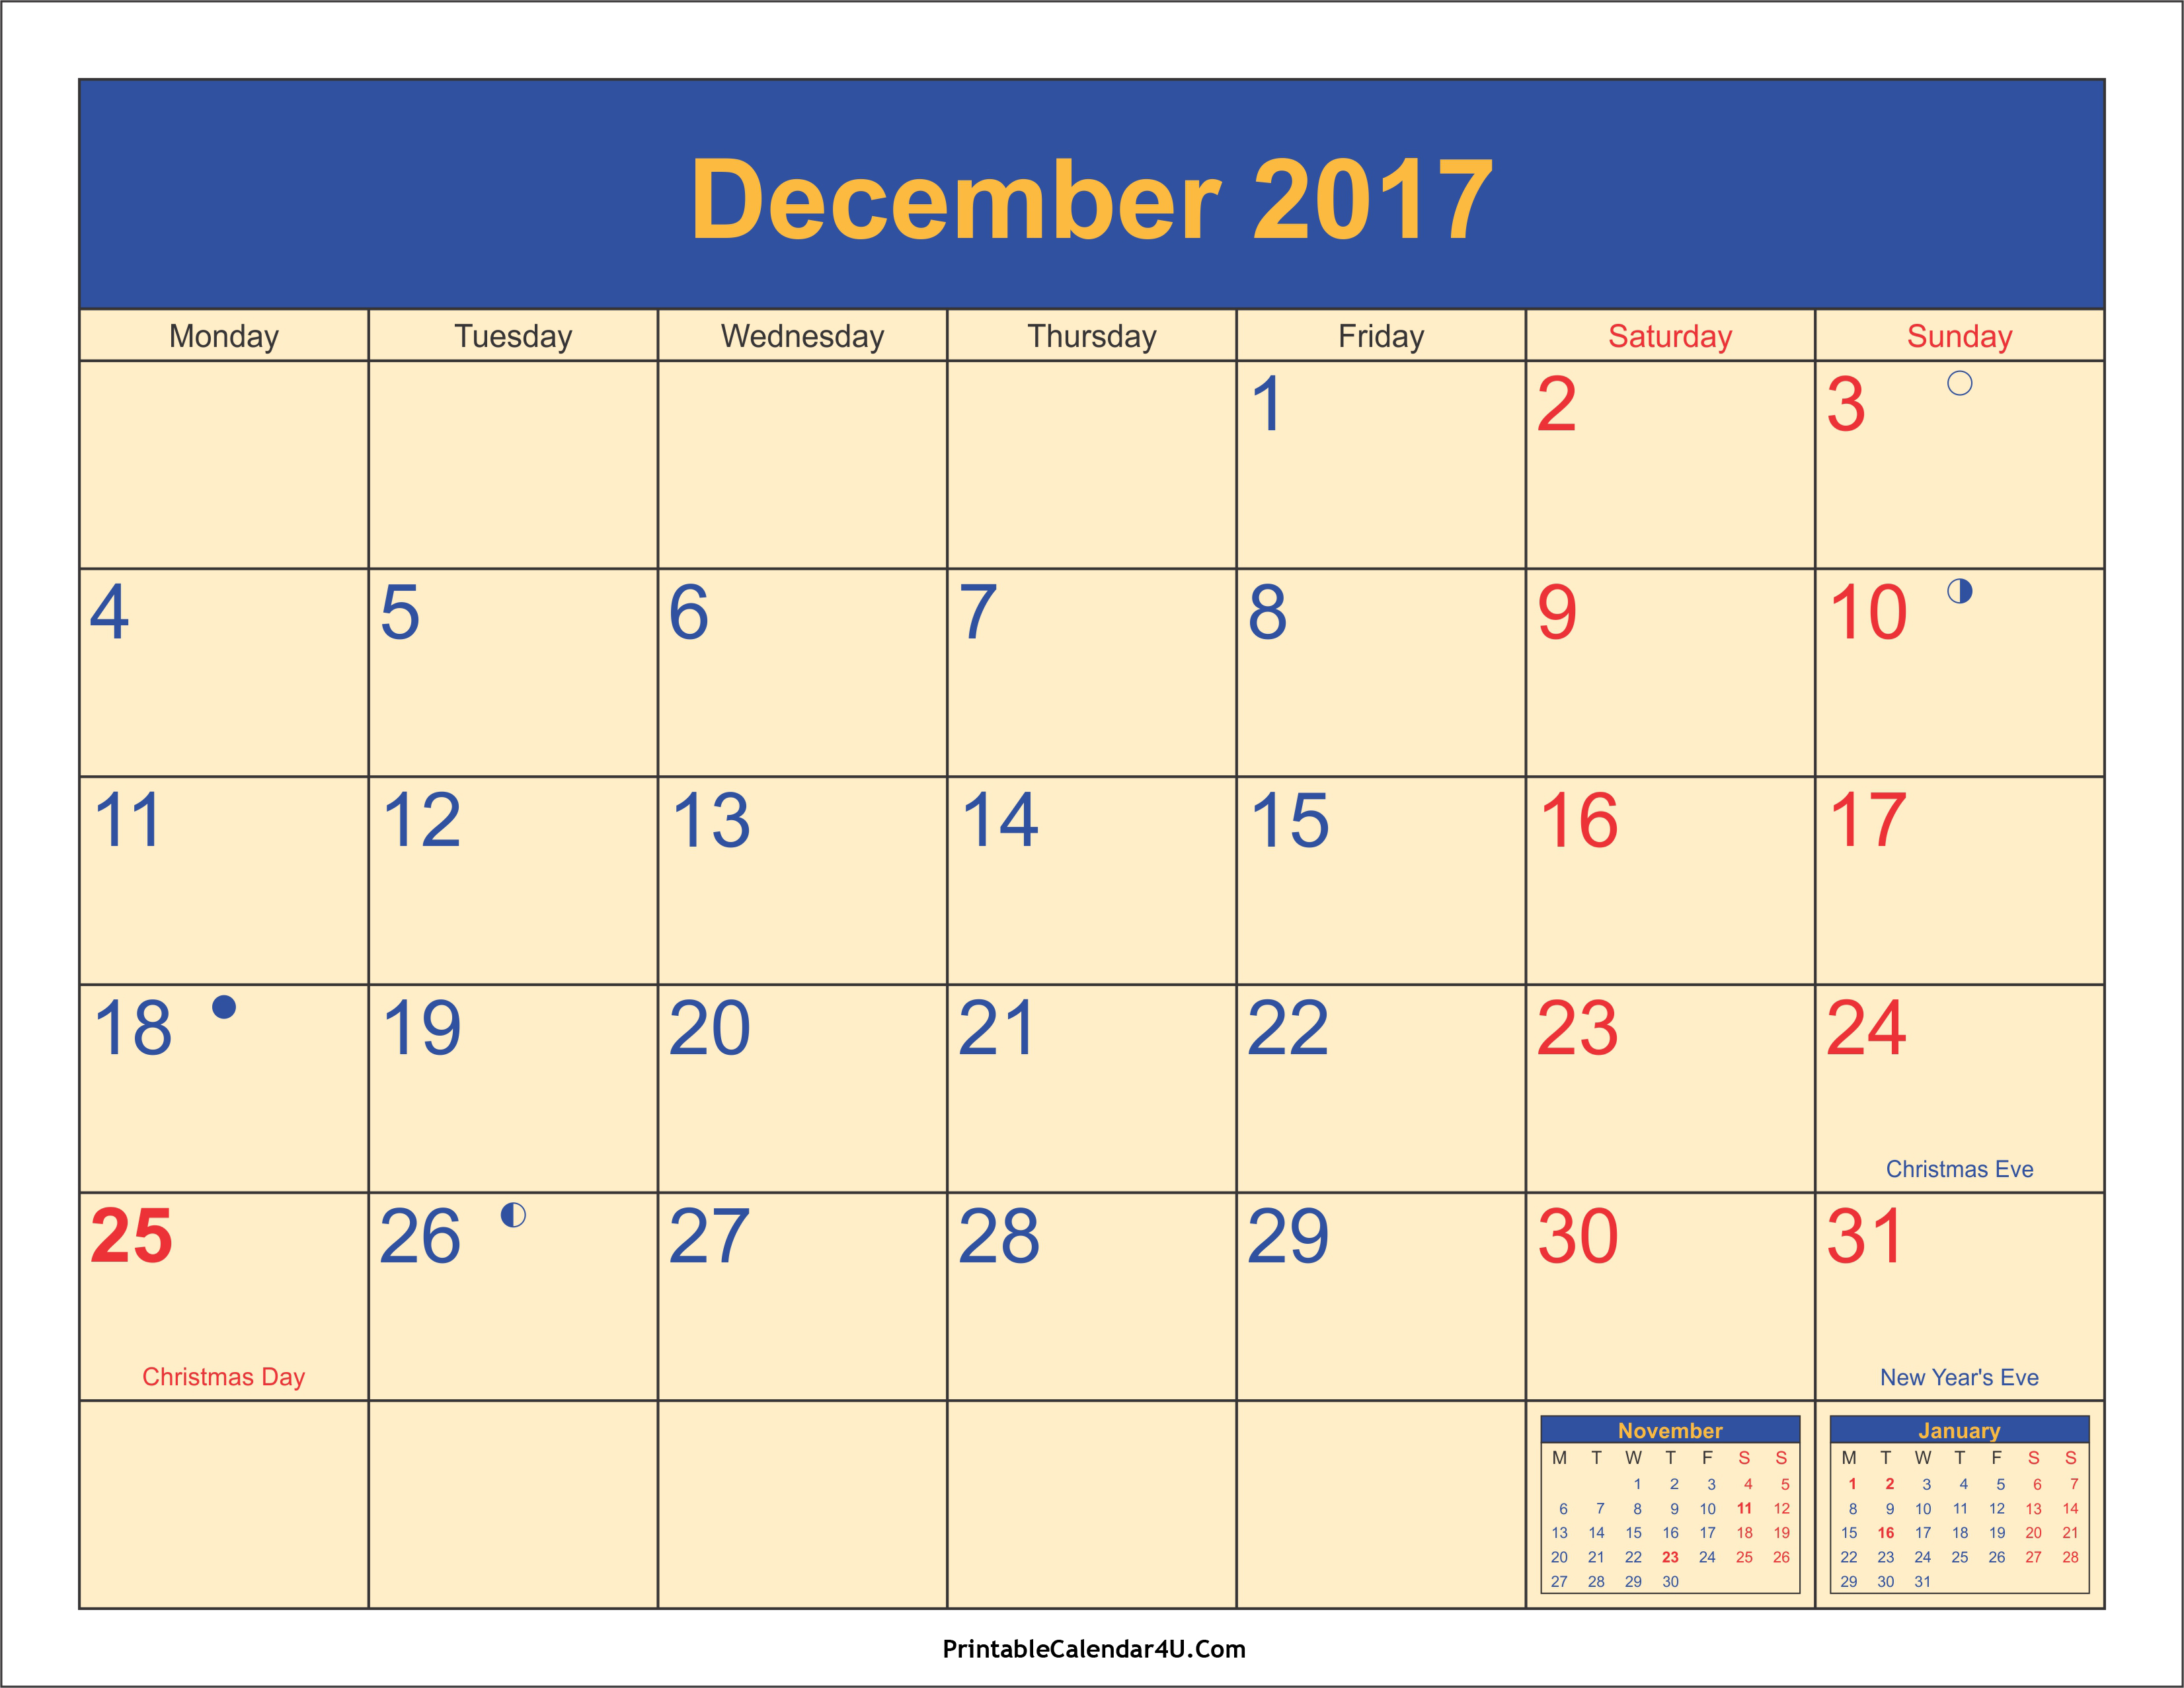 December 2017 Calendar Printable with Holidays PDF and